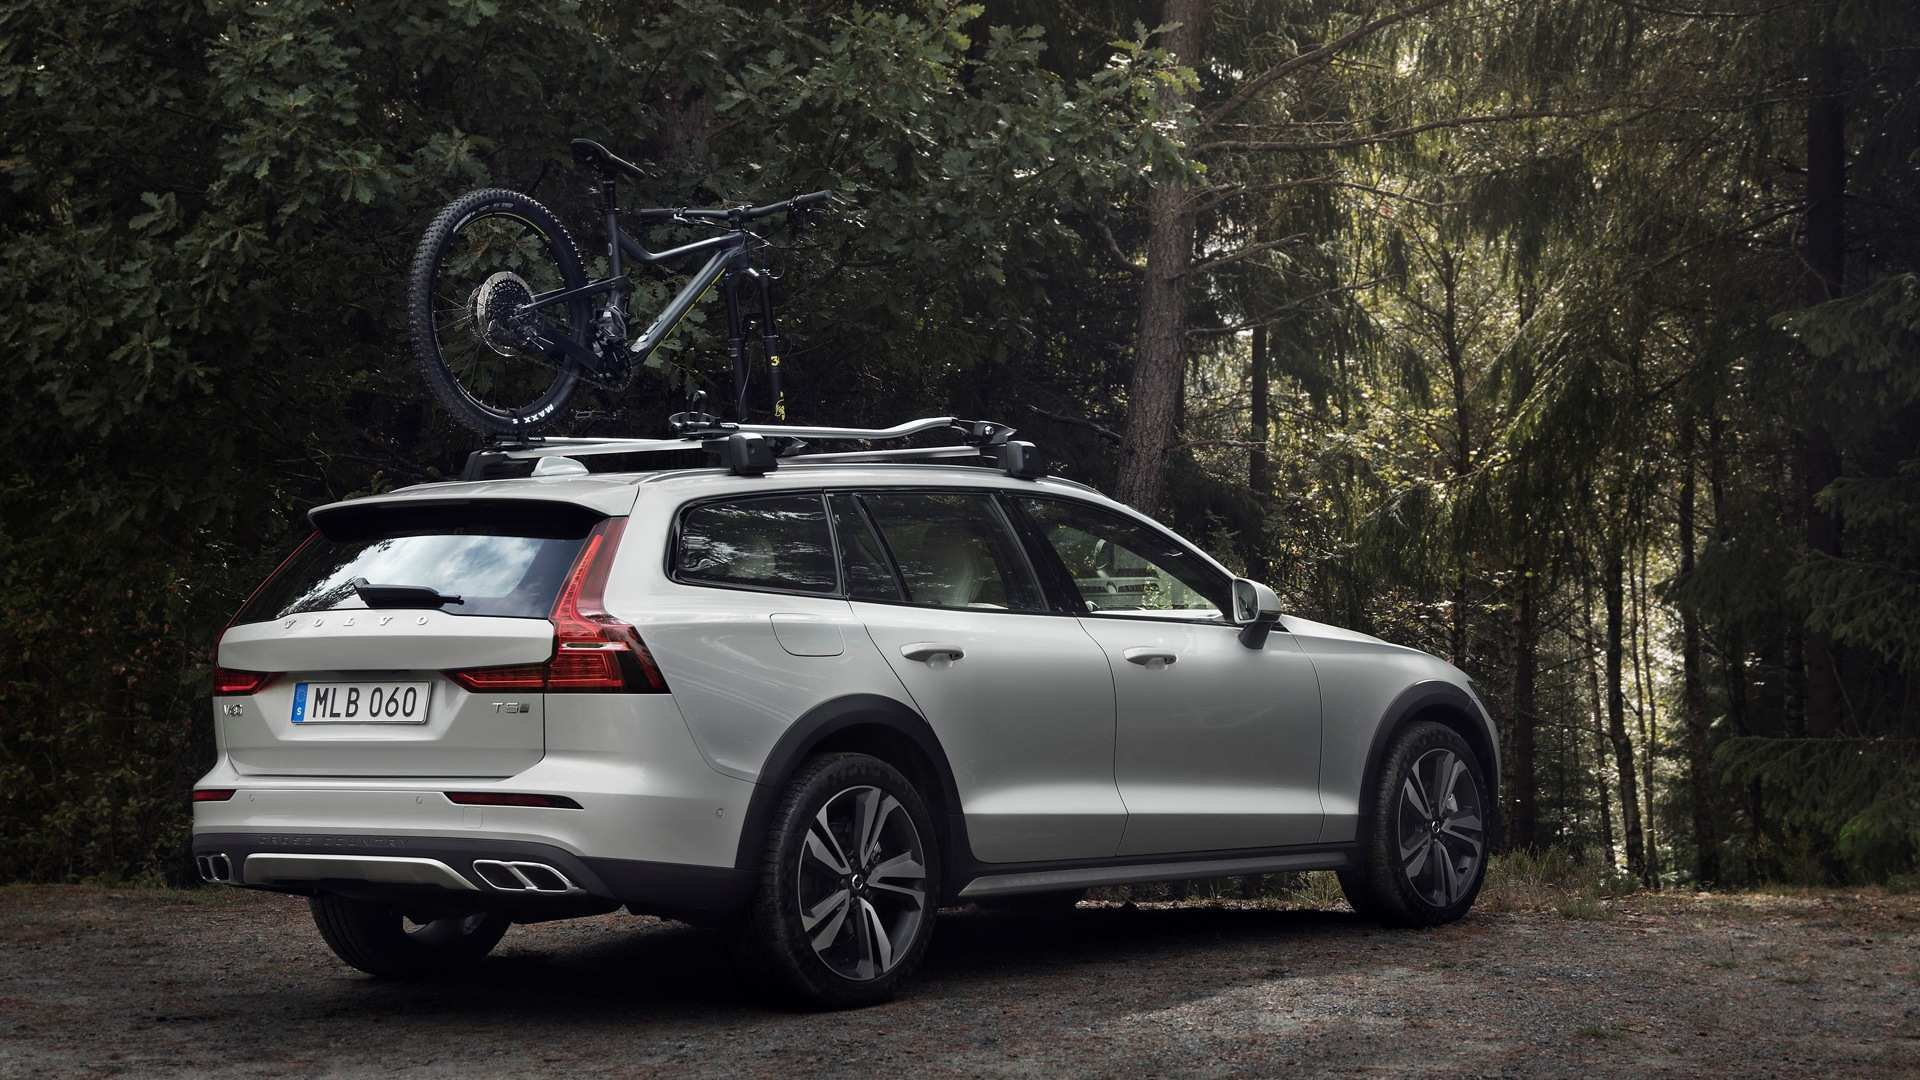 42 All New Volvo Cross Country 2020 History for Volvo Cross Country 2020